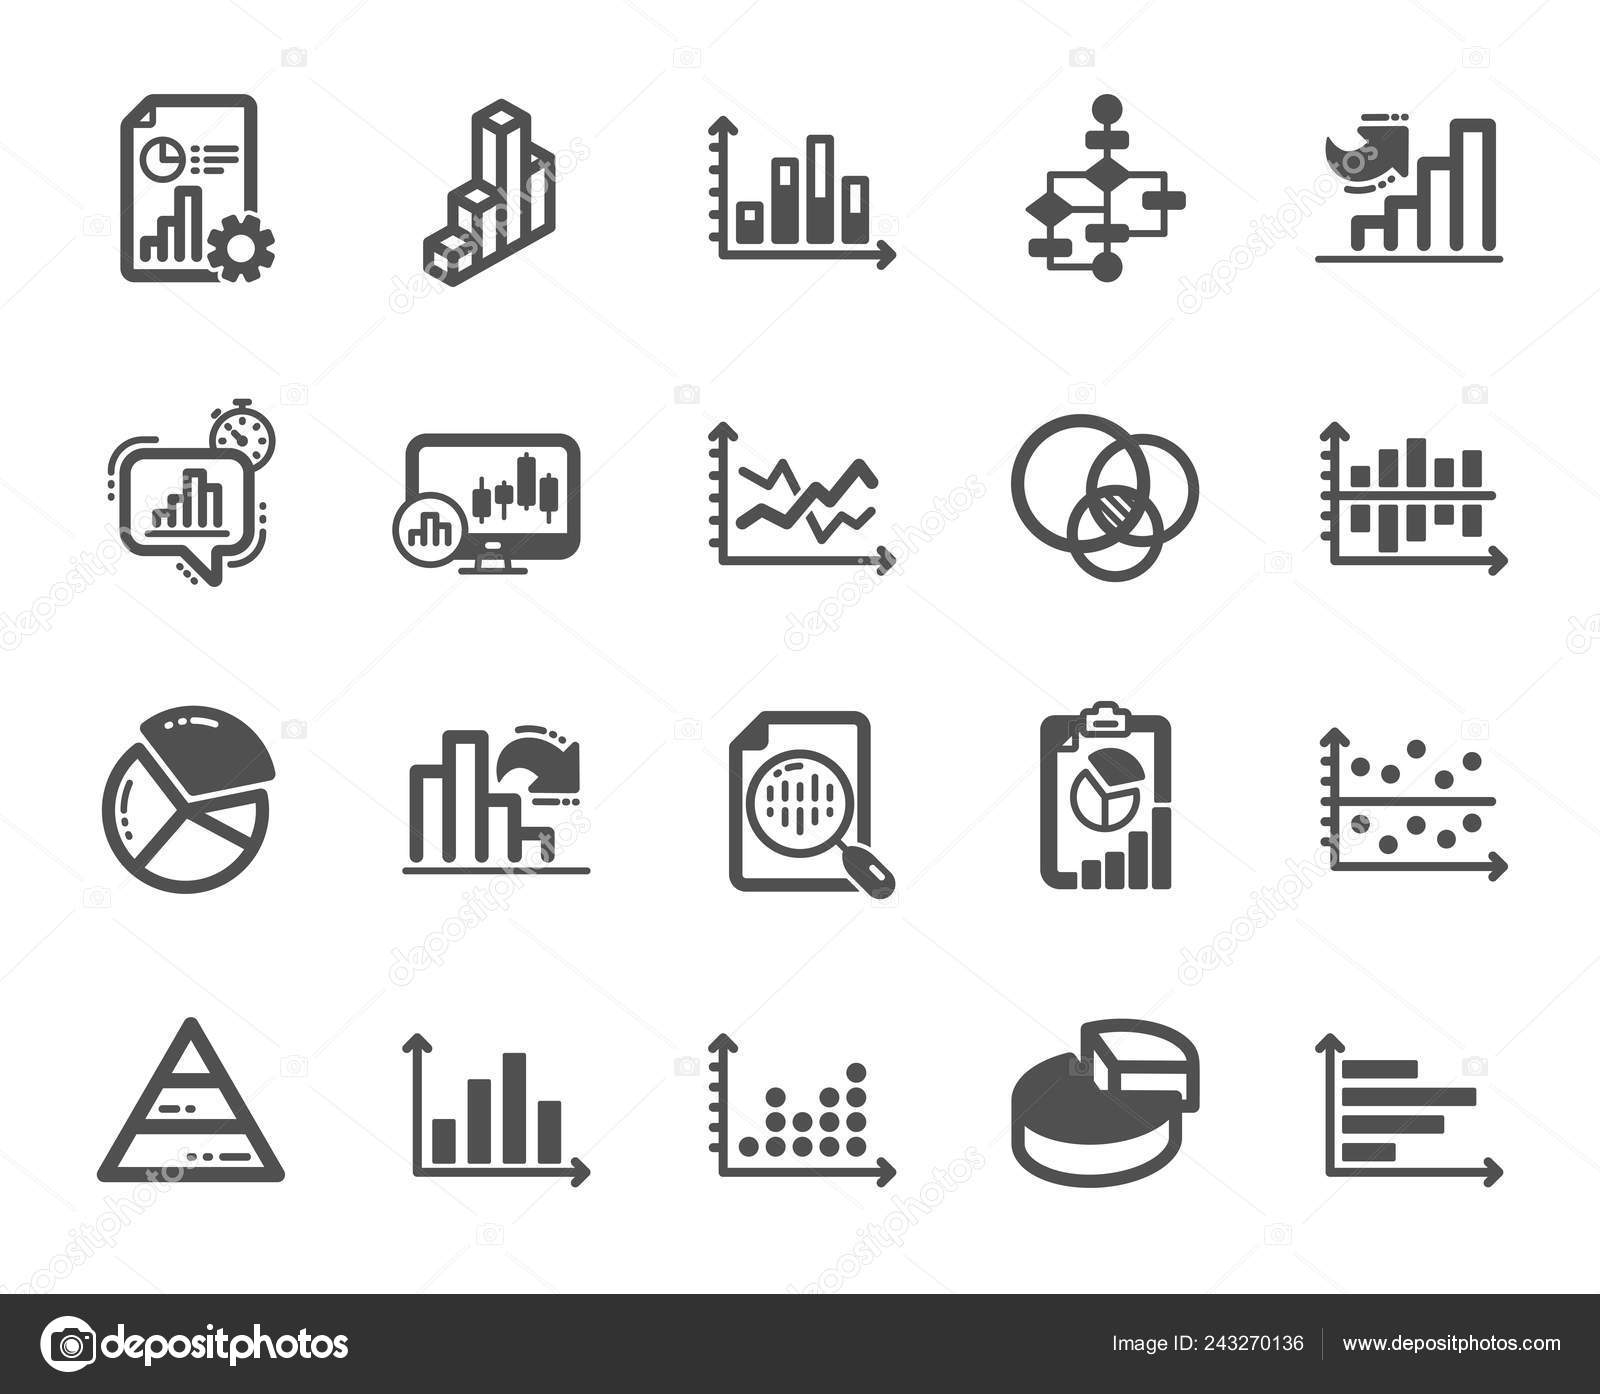 hight resolution of charts and diagrams icons report 3d chart block diagram and dot plot graph icons trend pyramid and pie chart report symbols presentation infochart